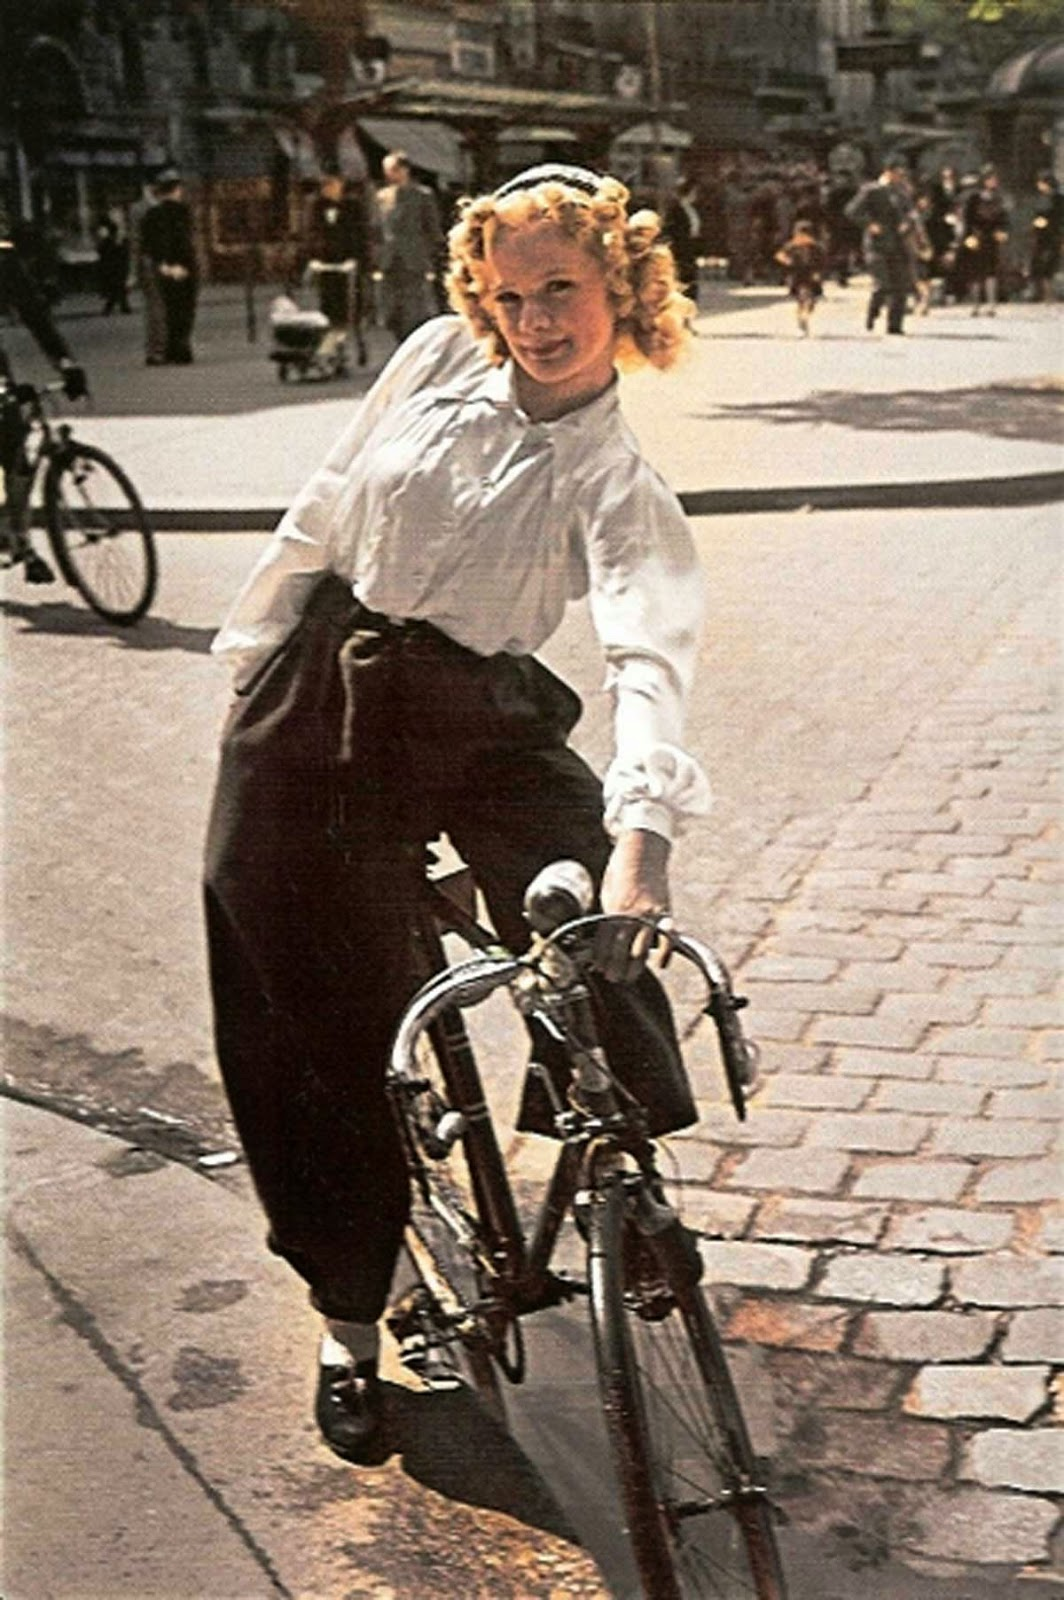 Parisian Women from between 1930s and 1940s (5).jpg